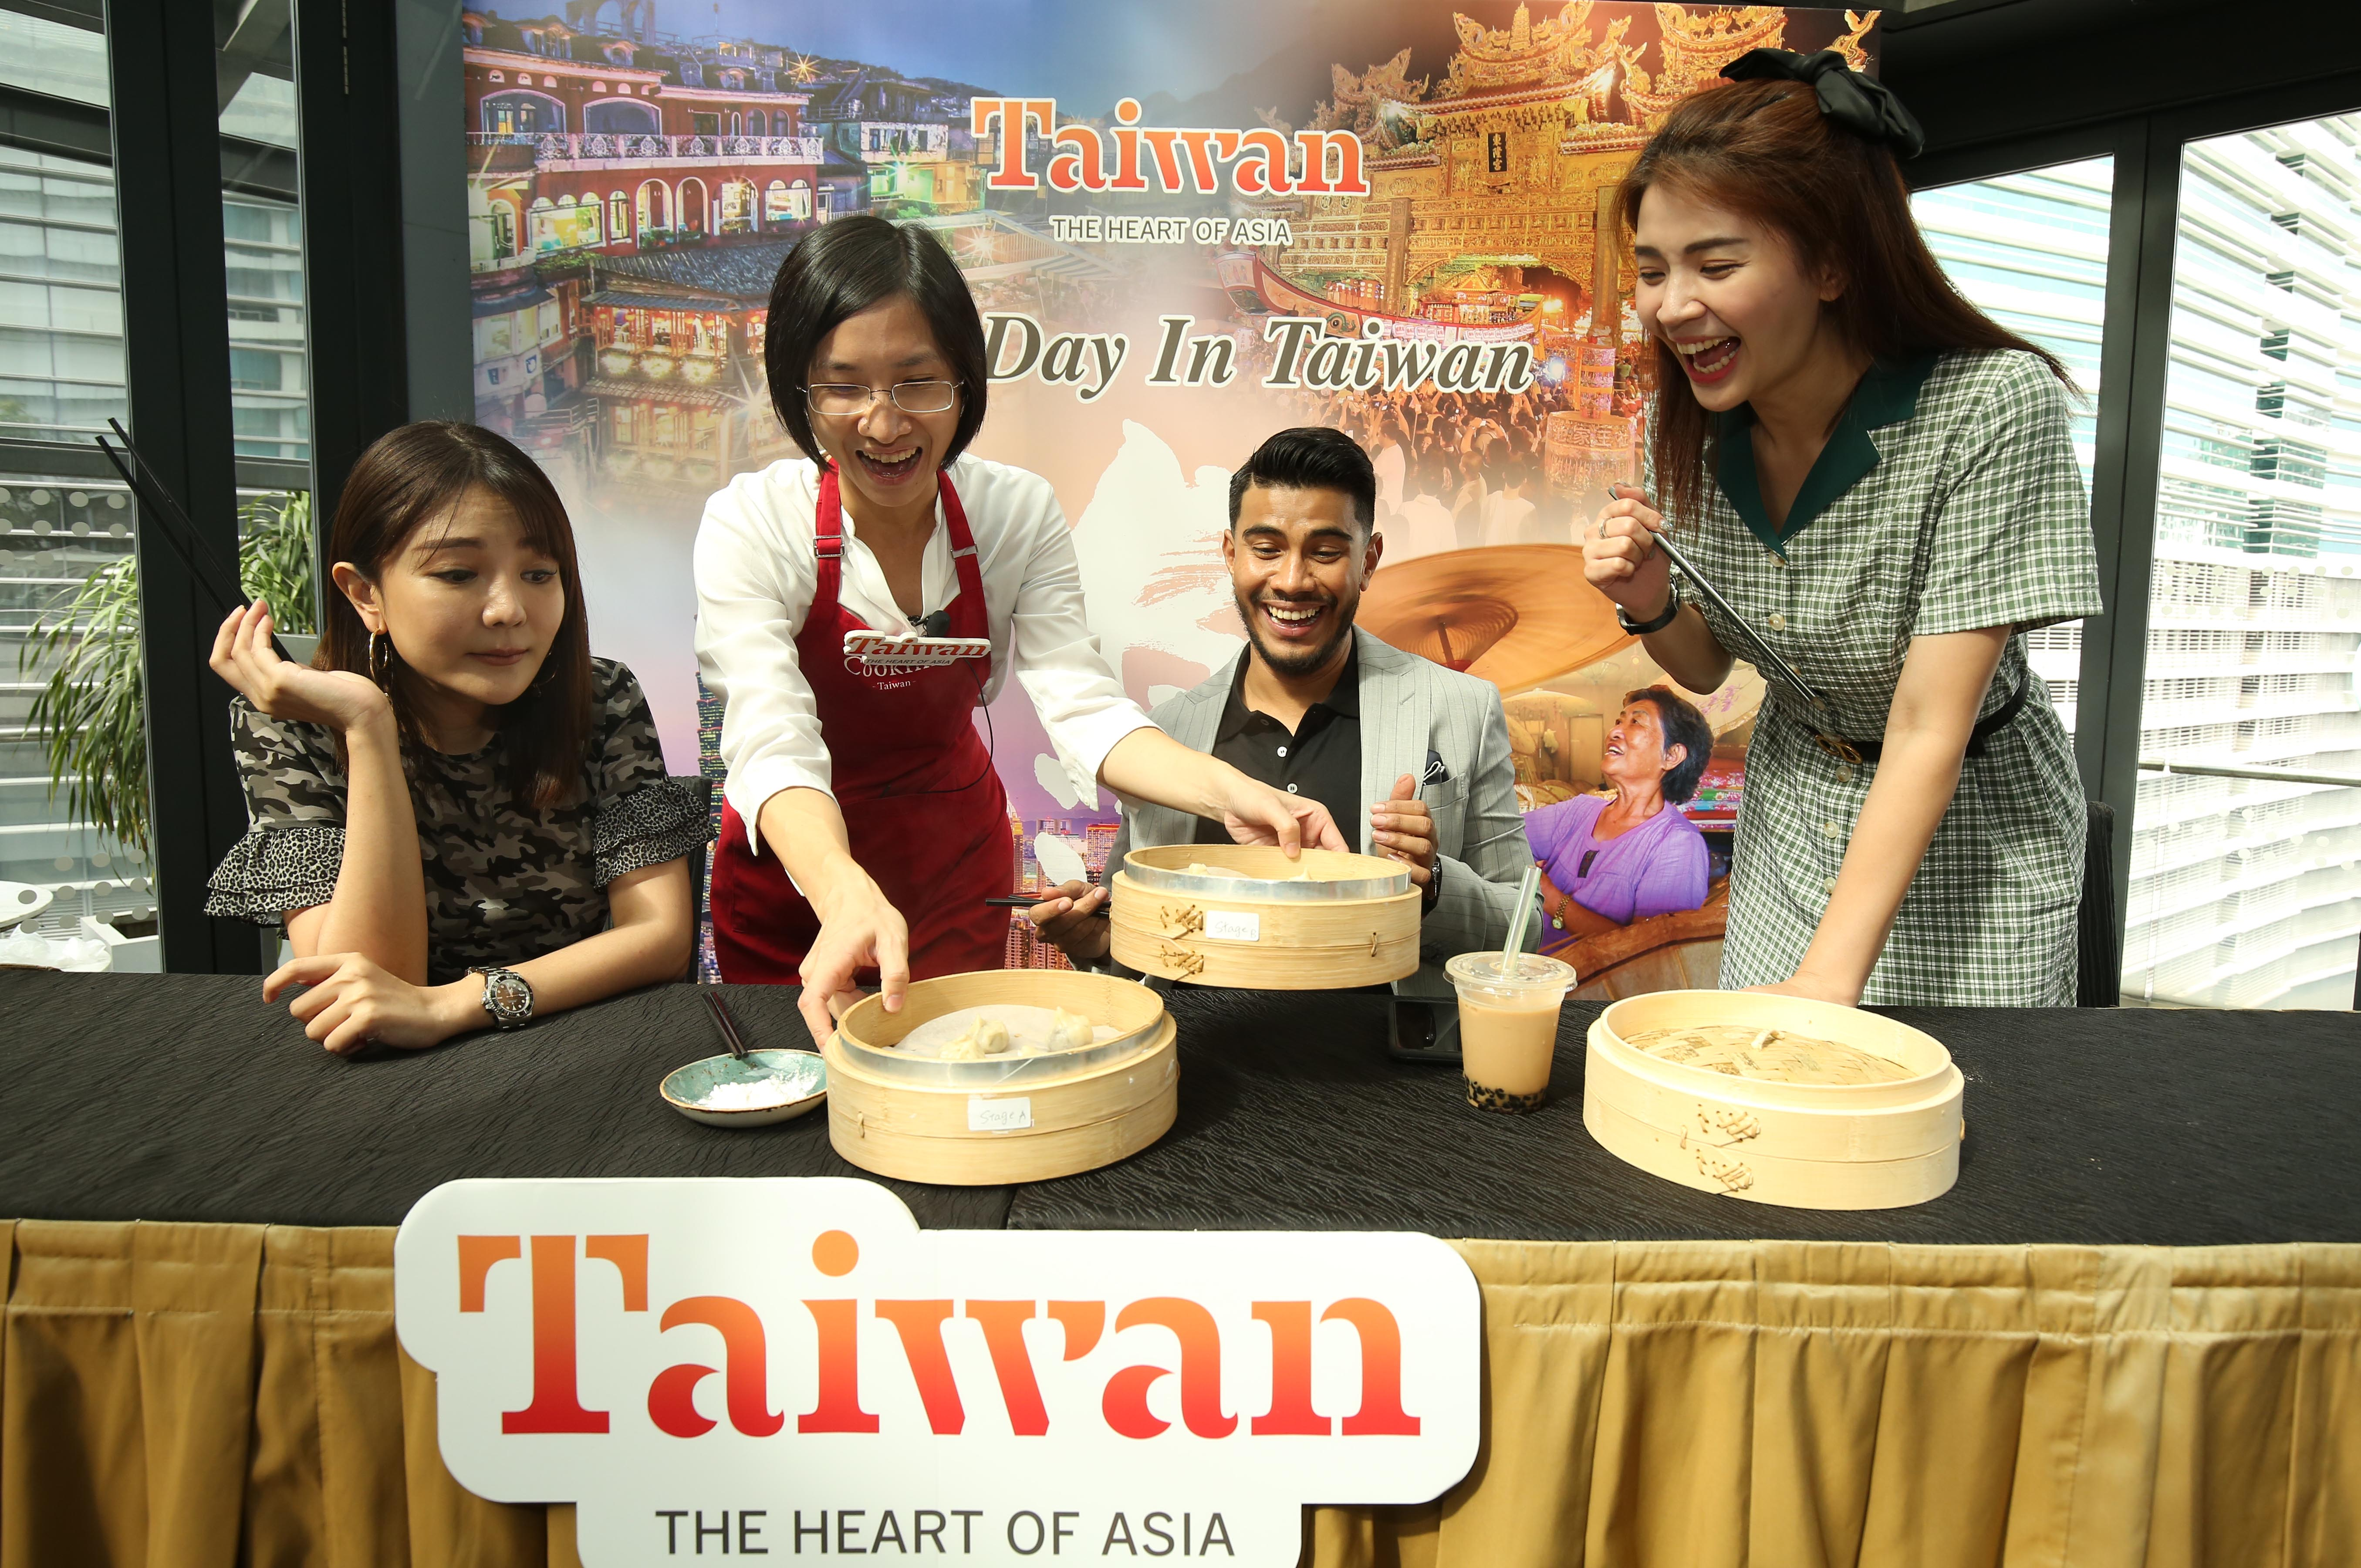 Artist Tong Bing Yu (left 1), influencer Azrel Ismail(left 3) and DJ Emely Poon (right) happily await for their own DIY creative Taiwanese dumplings.